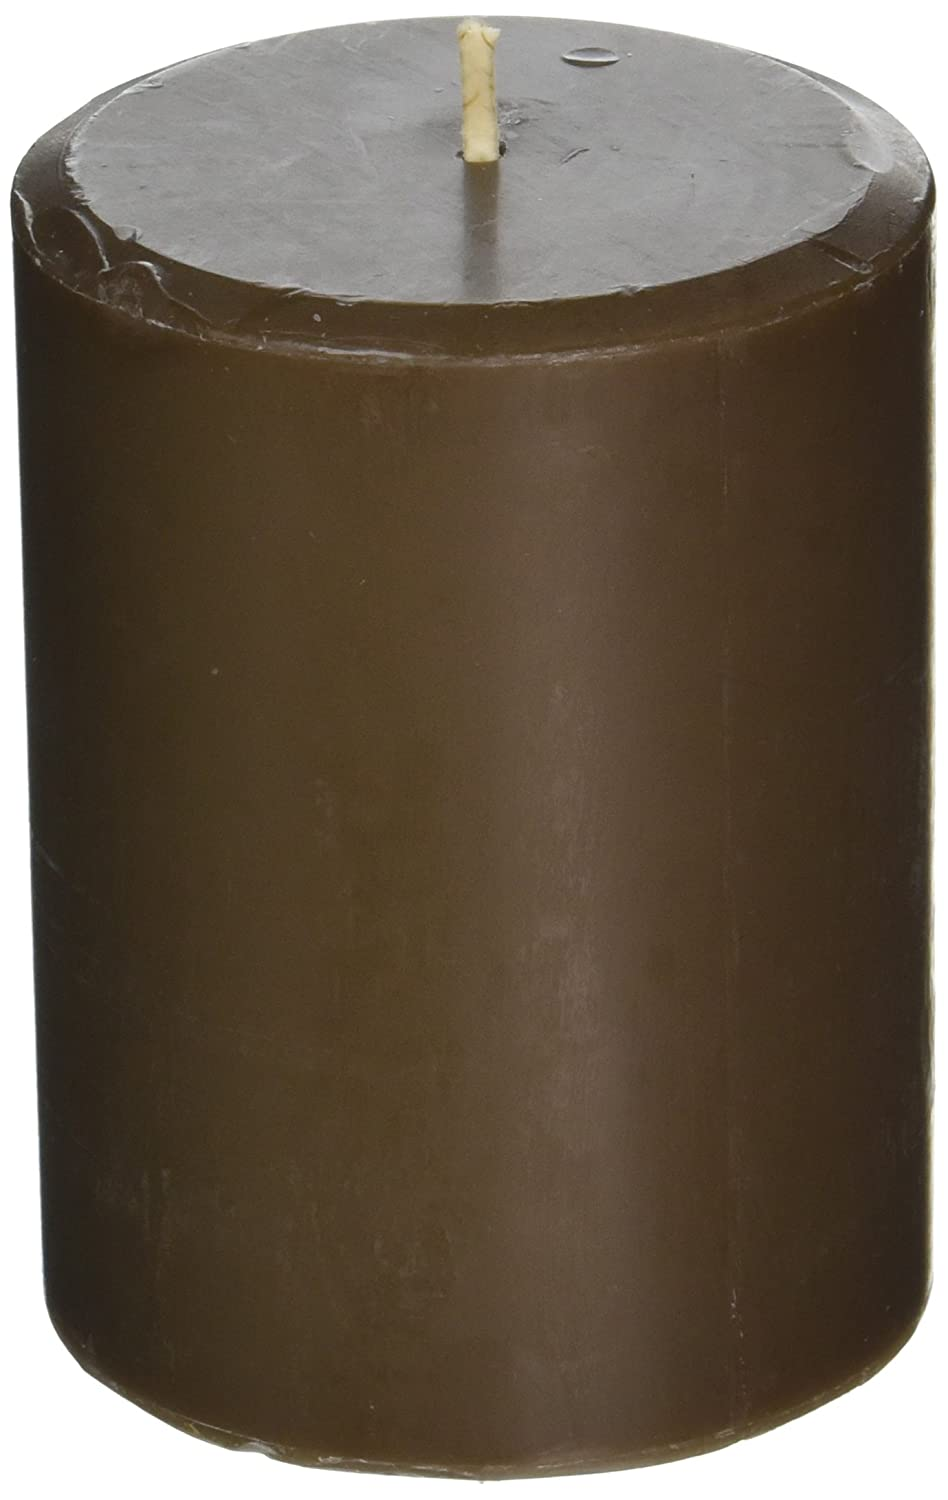 Northern Lights Candles Sandalwood & Patchouli Fragrance Palette Pillar Candle, 3 x 4 3 x 4 31549